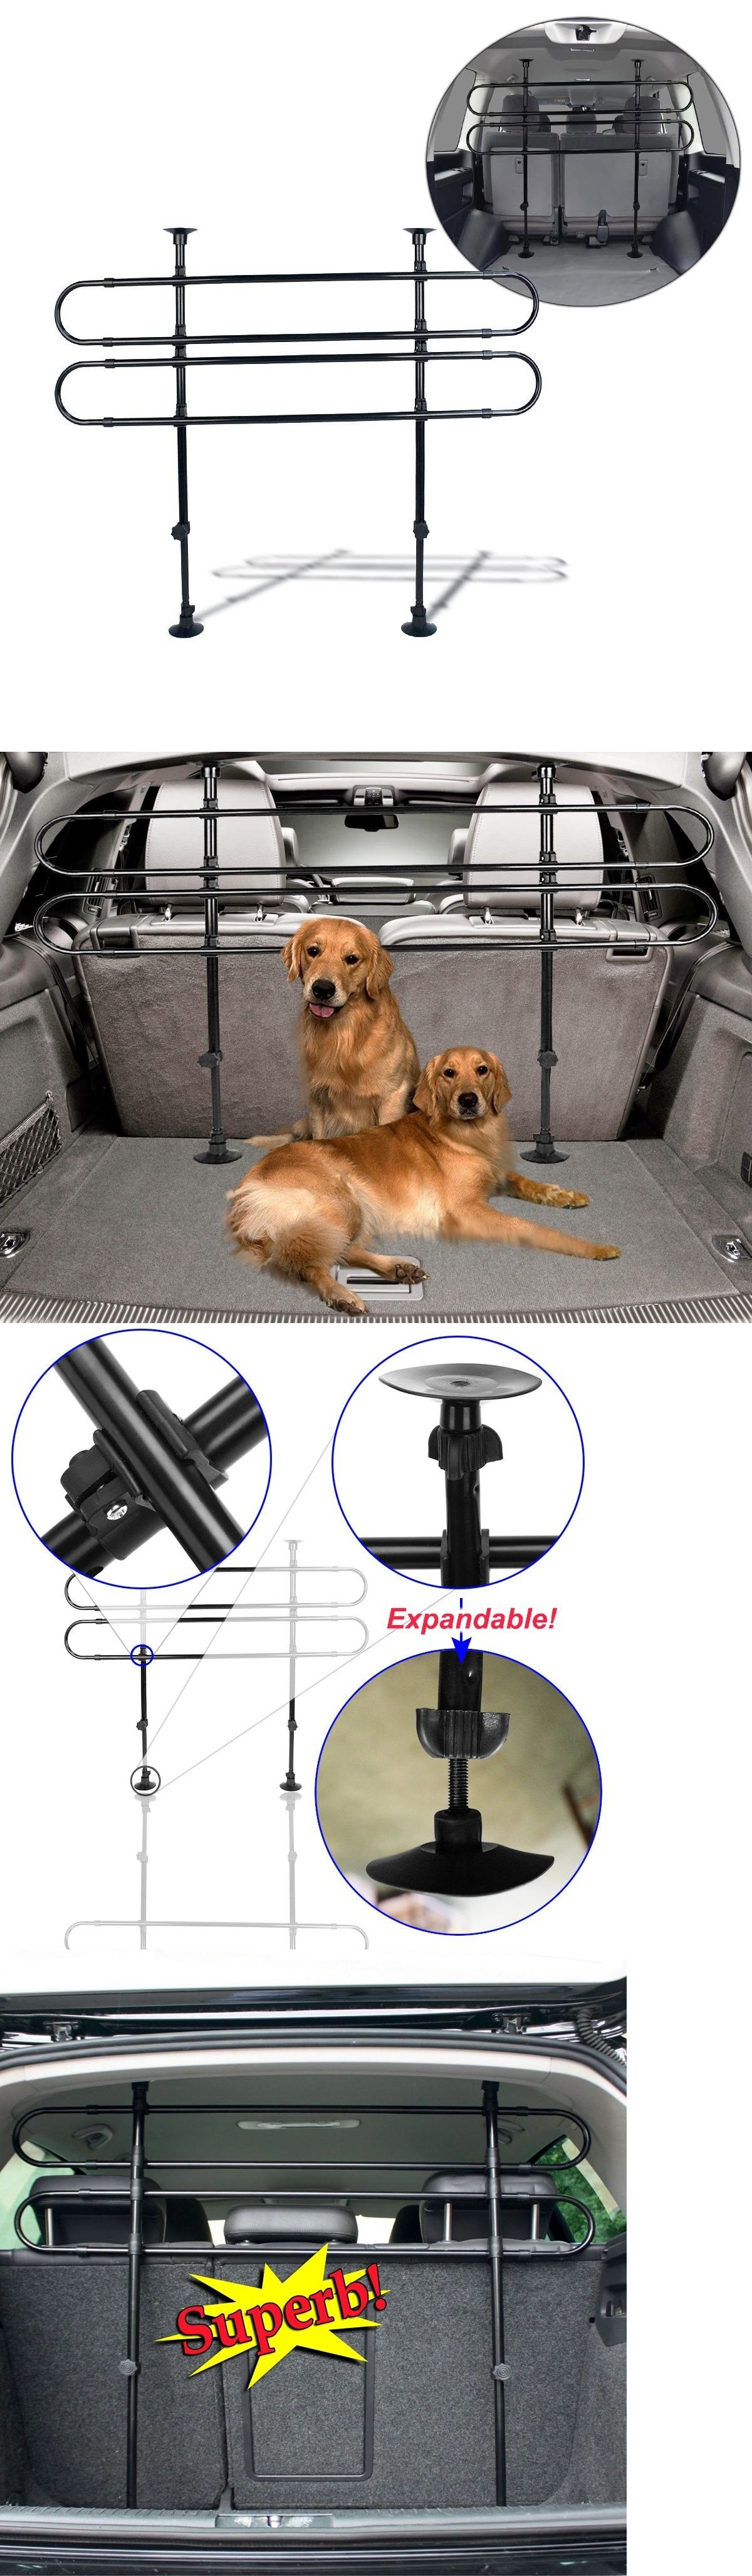 Car seats and barriers pet barrier dog accents gate pet dog